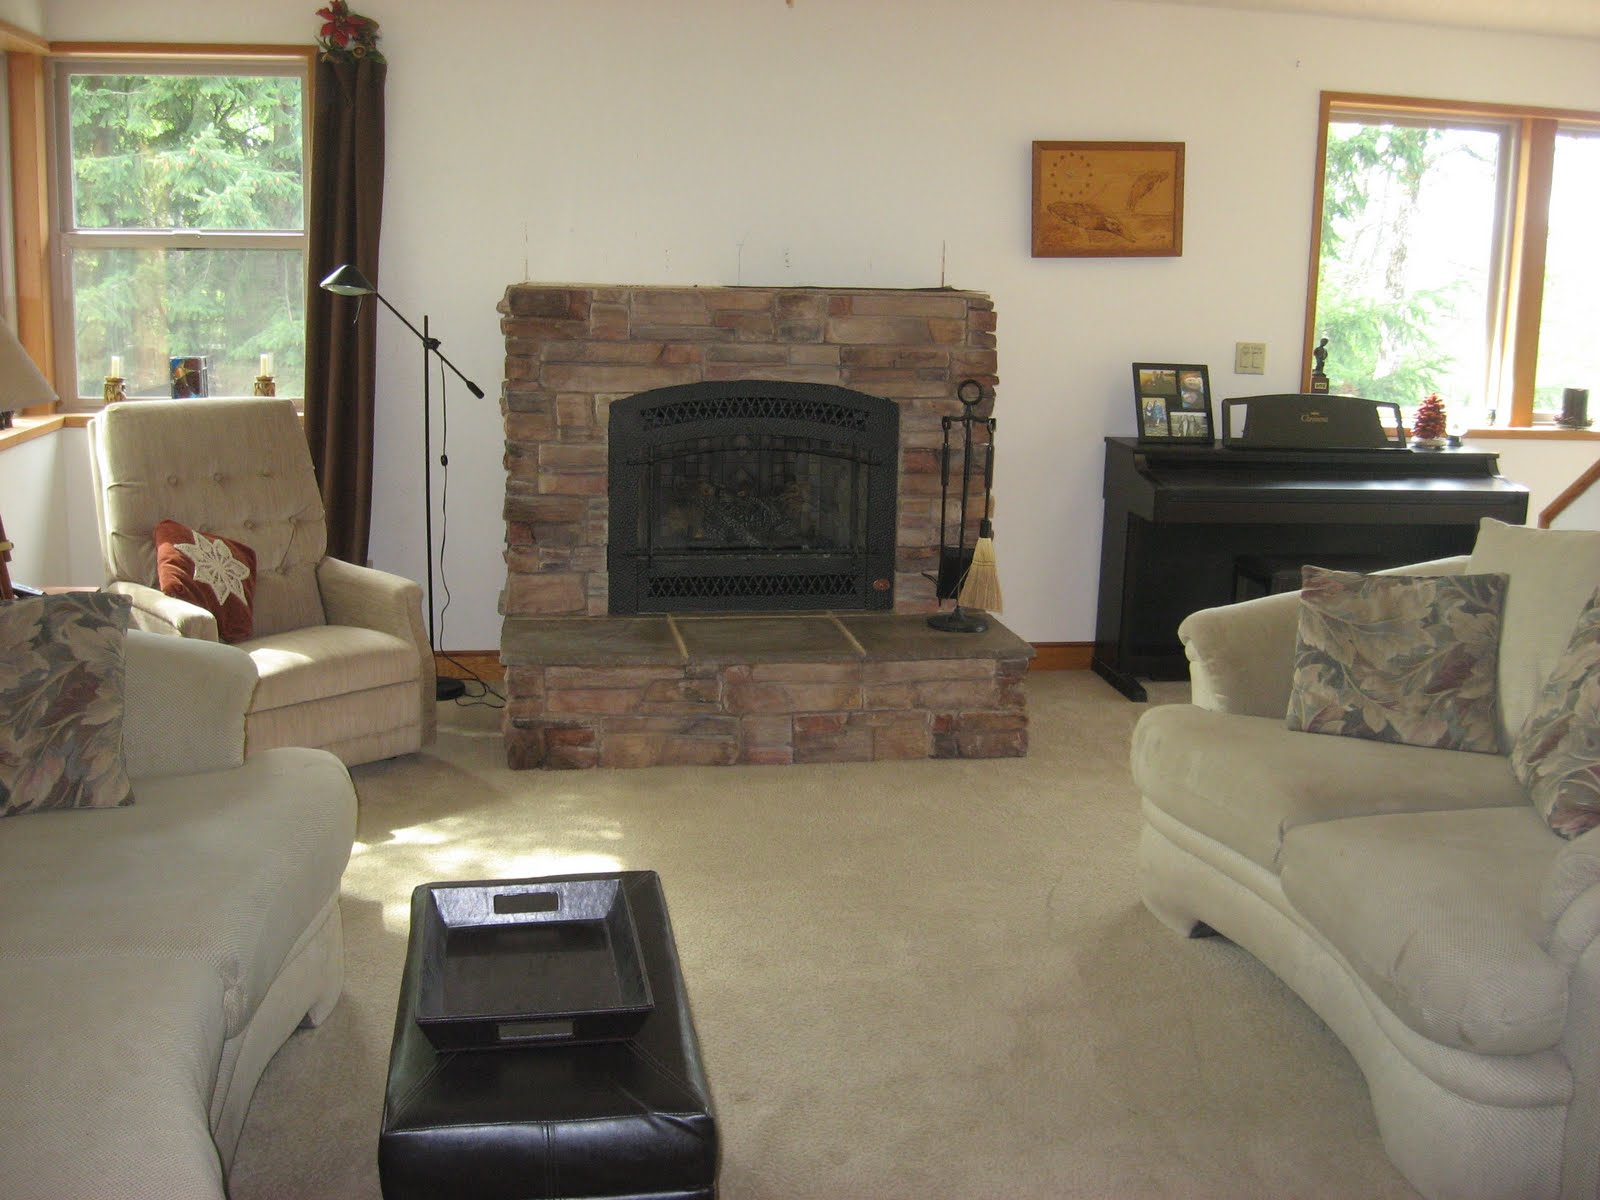 Far From the Pahk: Anatomy of a Fireplace